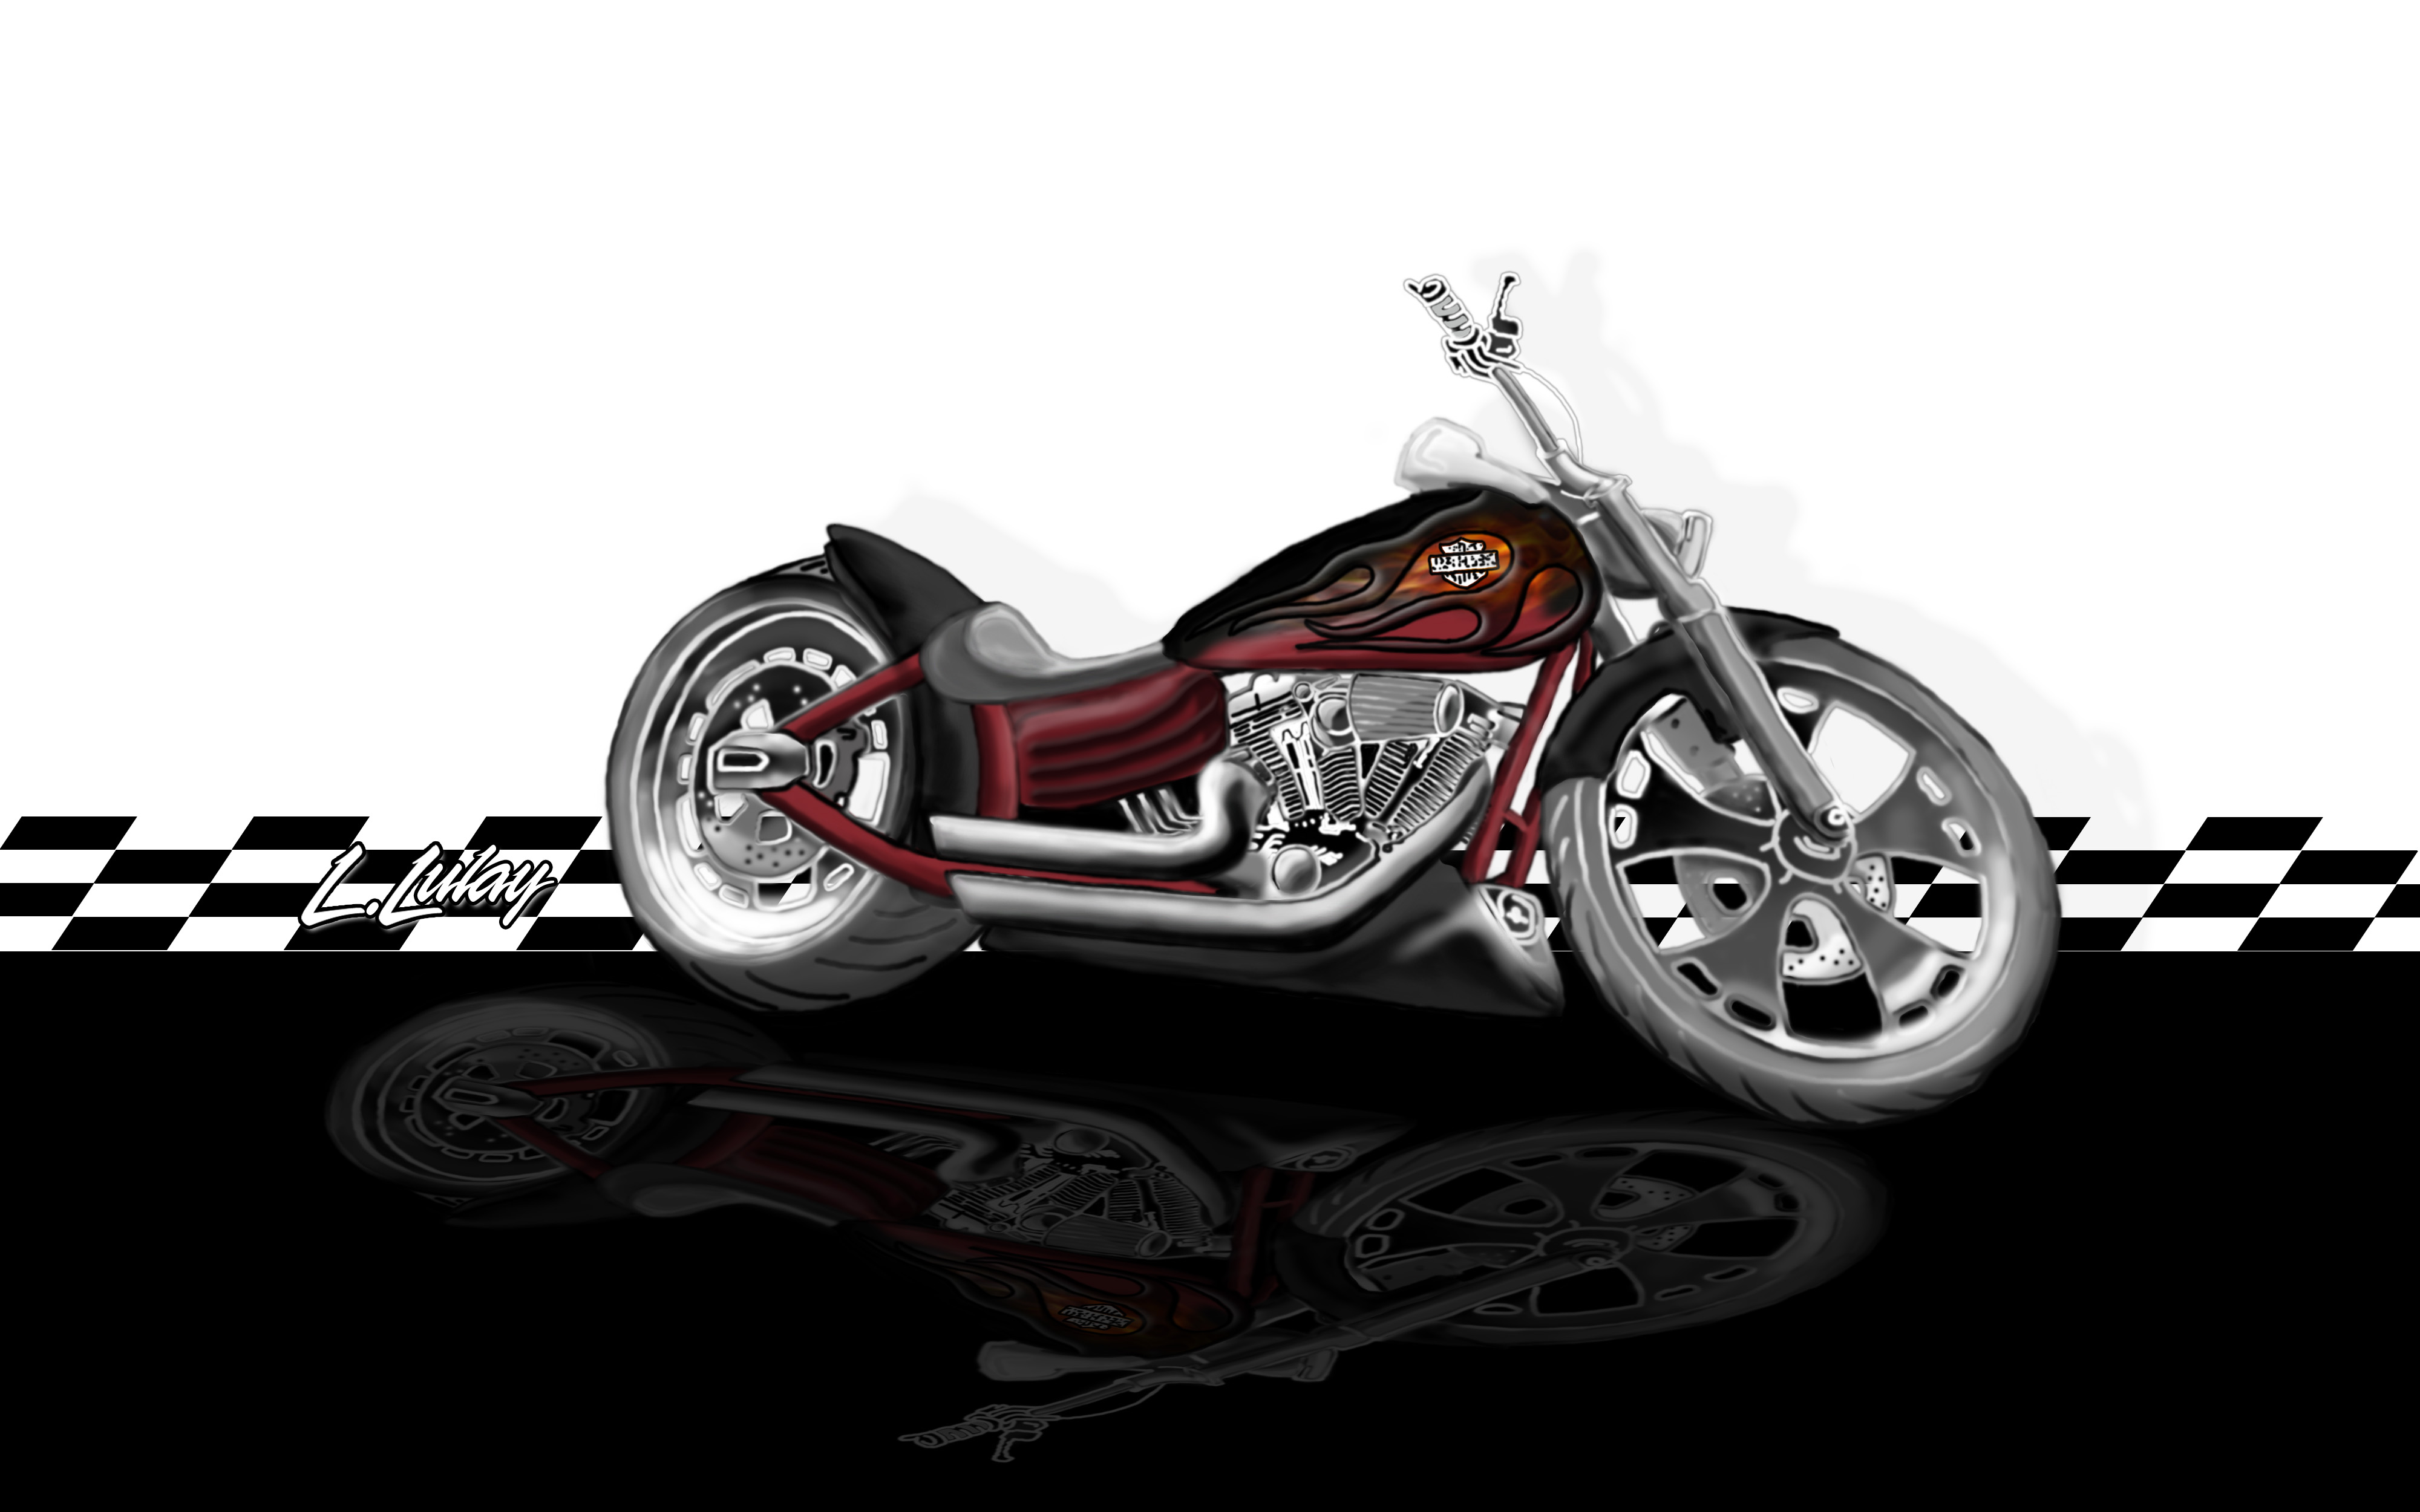 Lulay S Harley Artwork Caricatures Motorcycles Hotrods